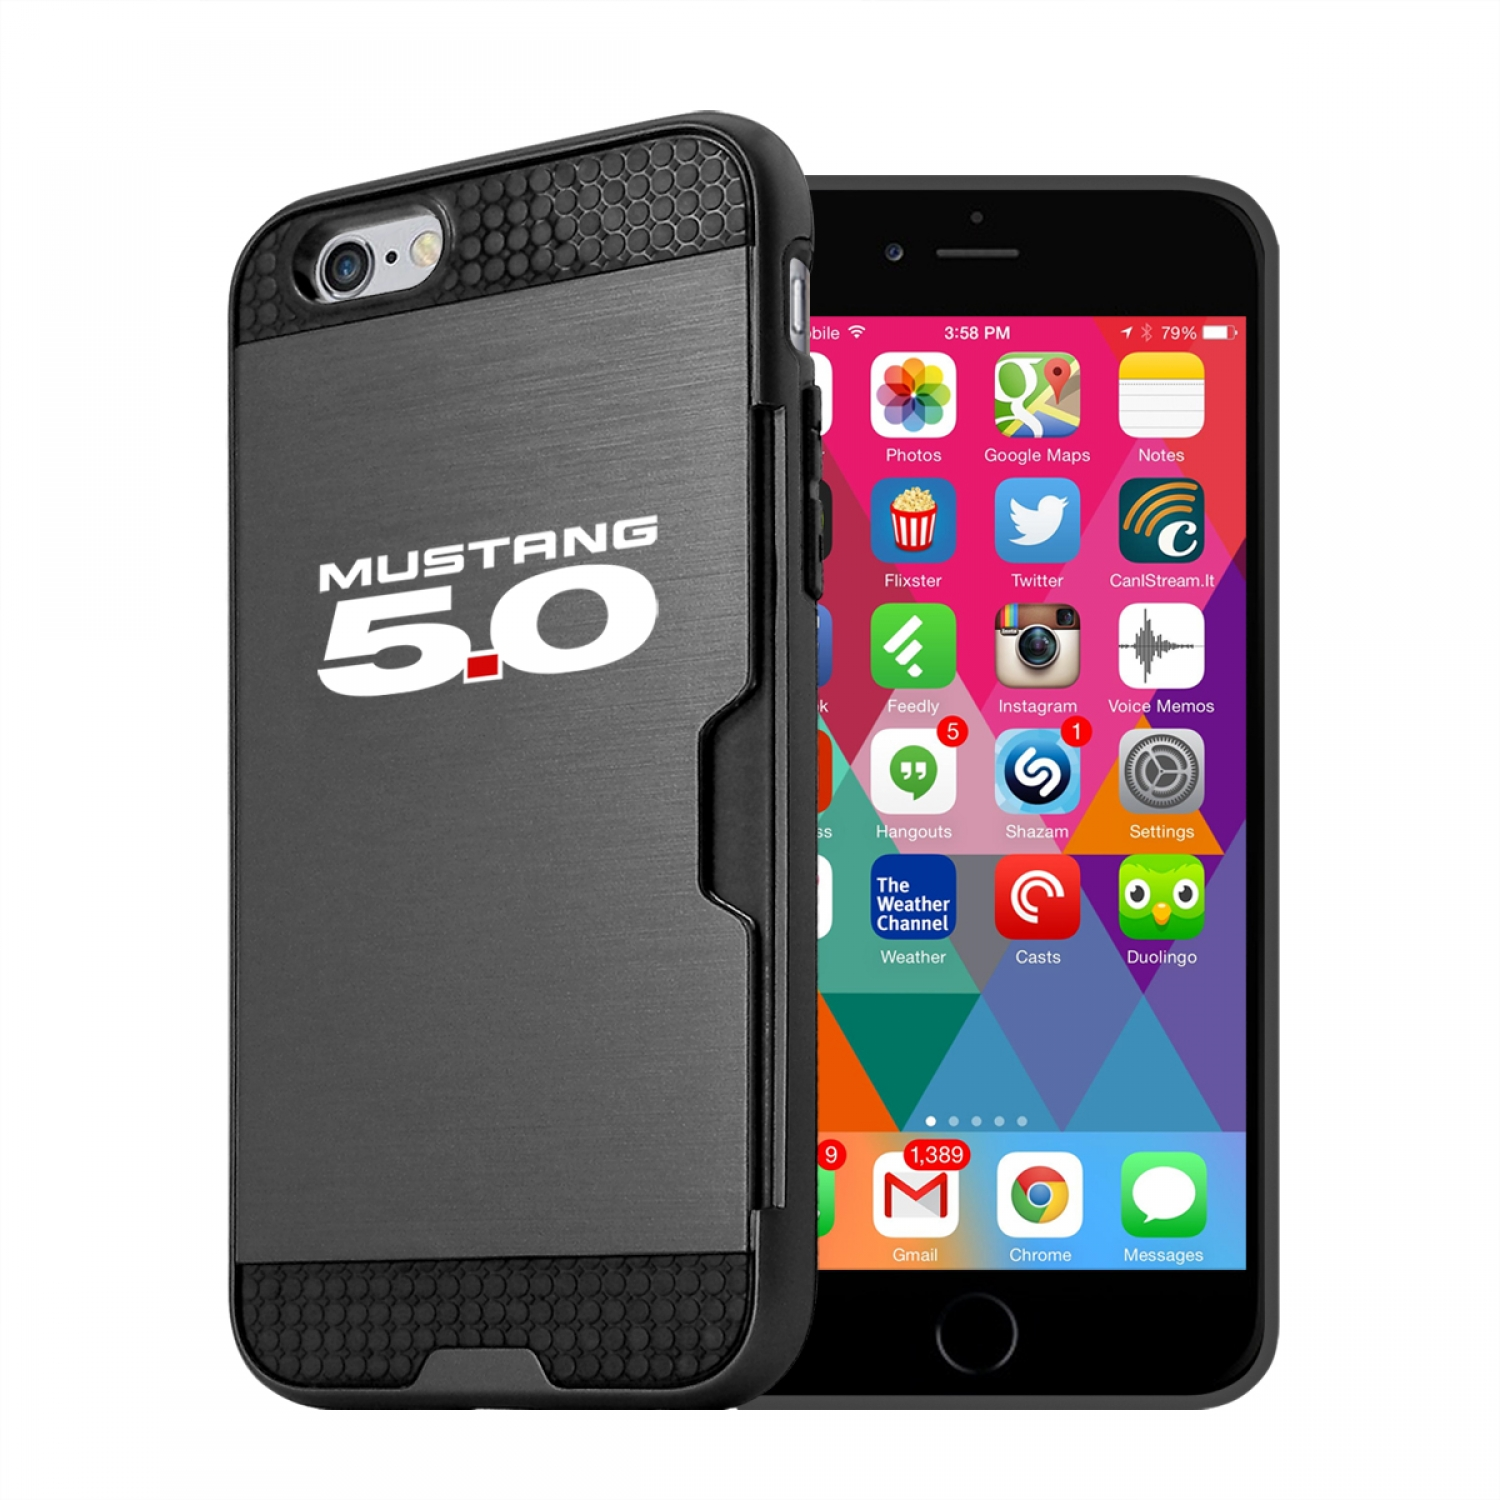 Ford Mustang 5.0 iPhone 6 6s Ultra Thin TPU Black Phone Case with Credit Card Slot Wallet